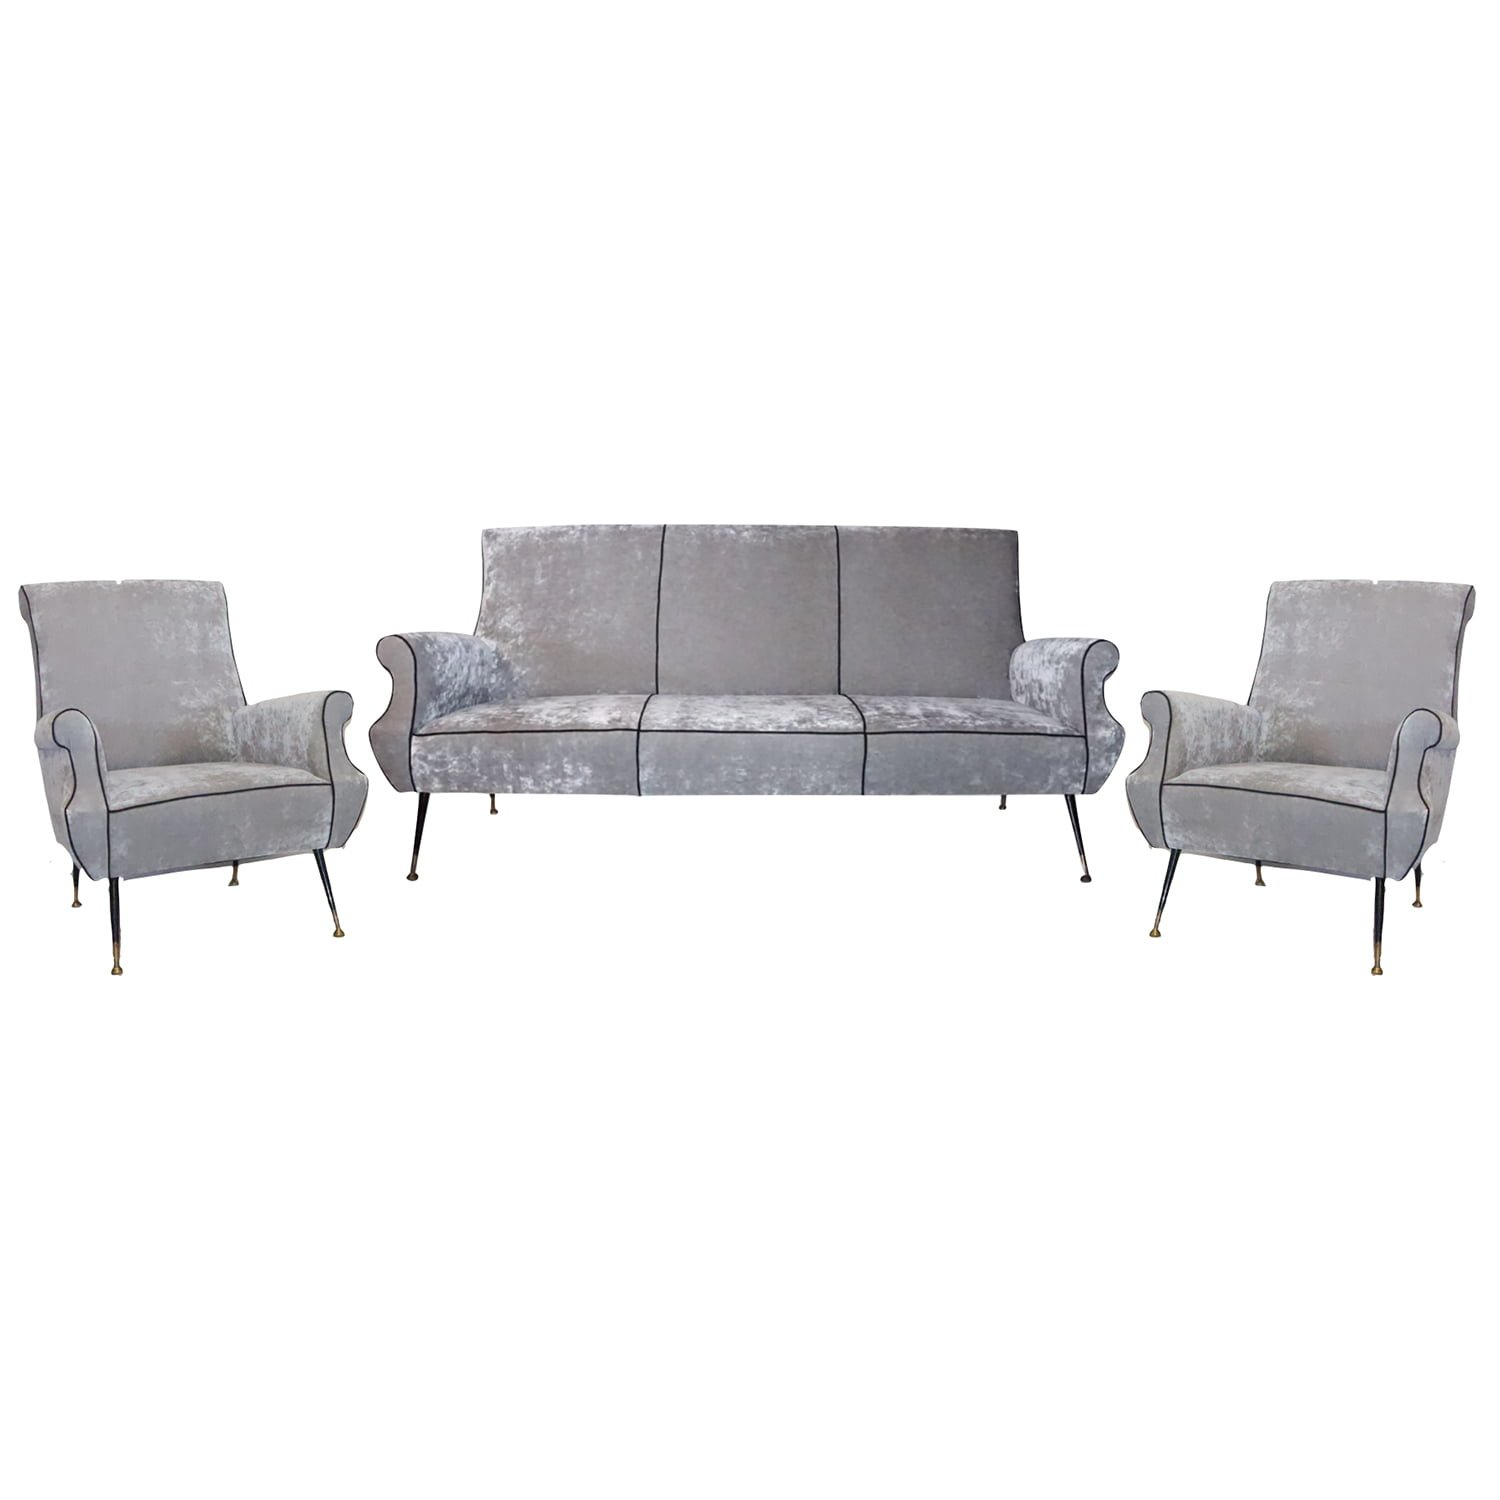 Minotti Living Room Set by Gigi Radice